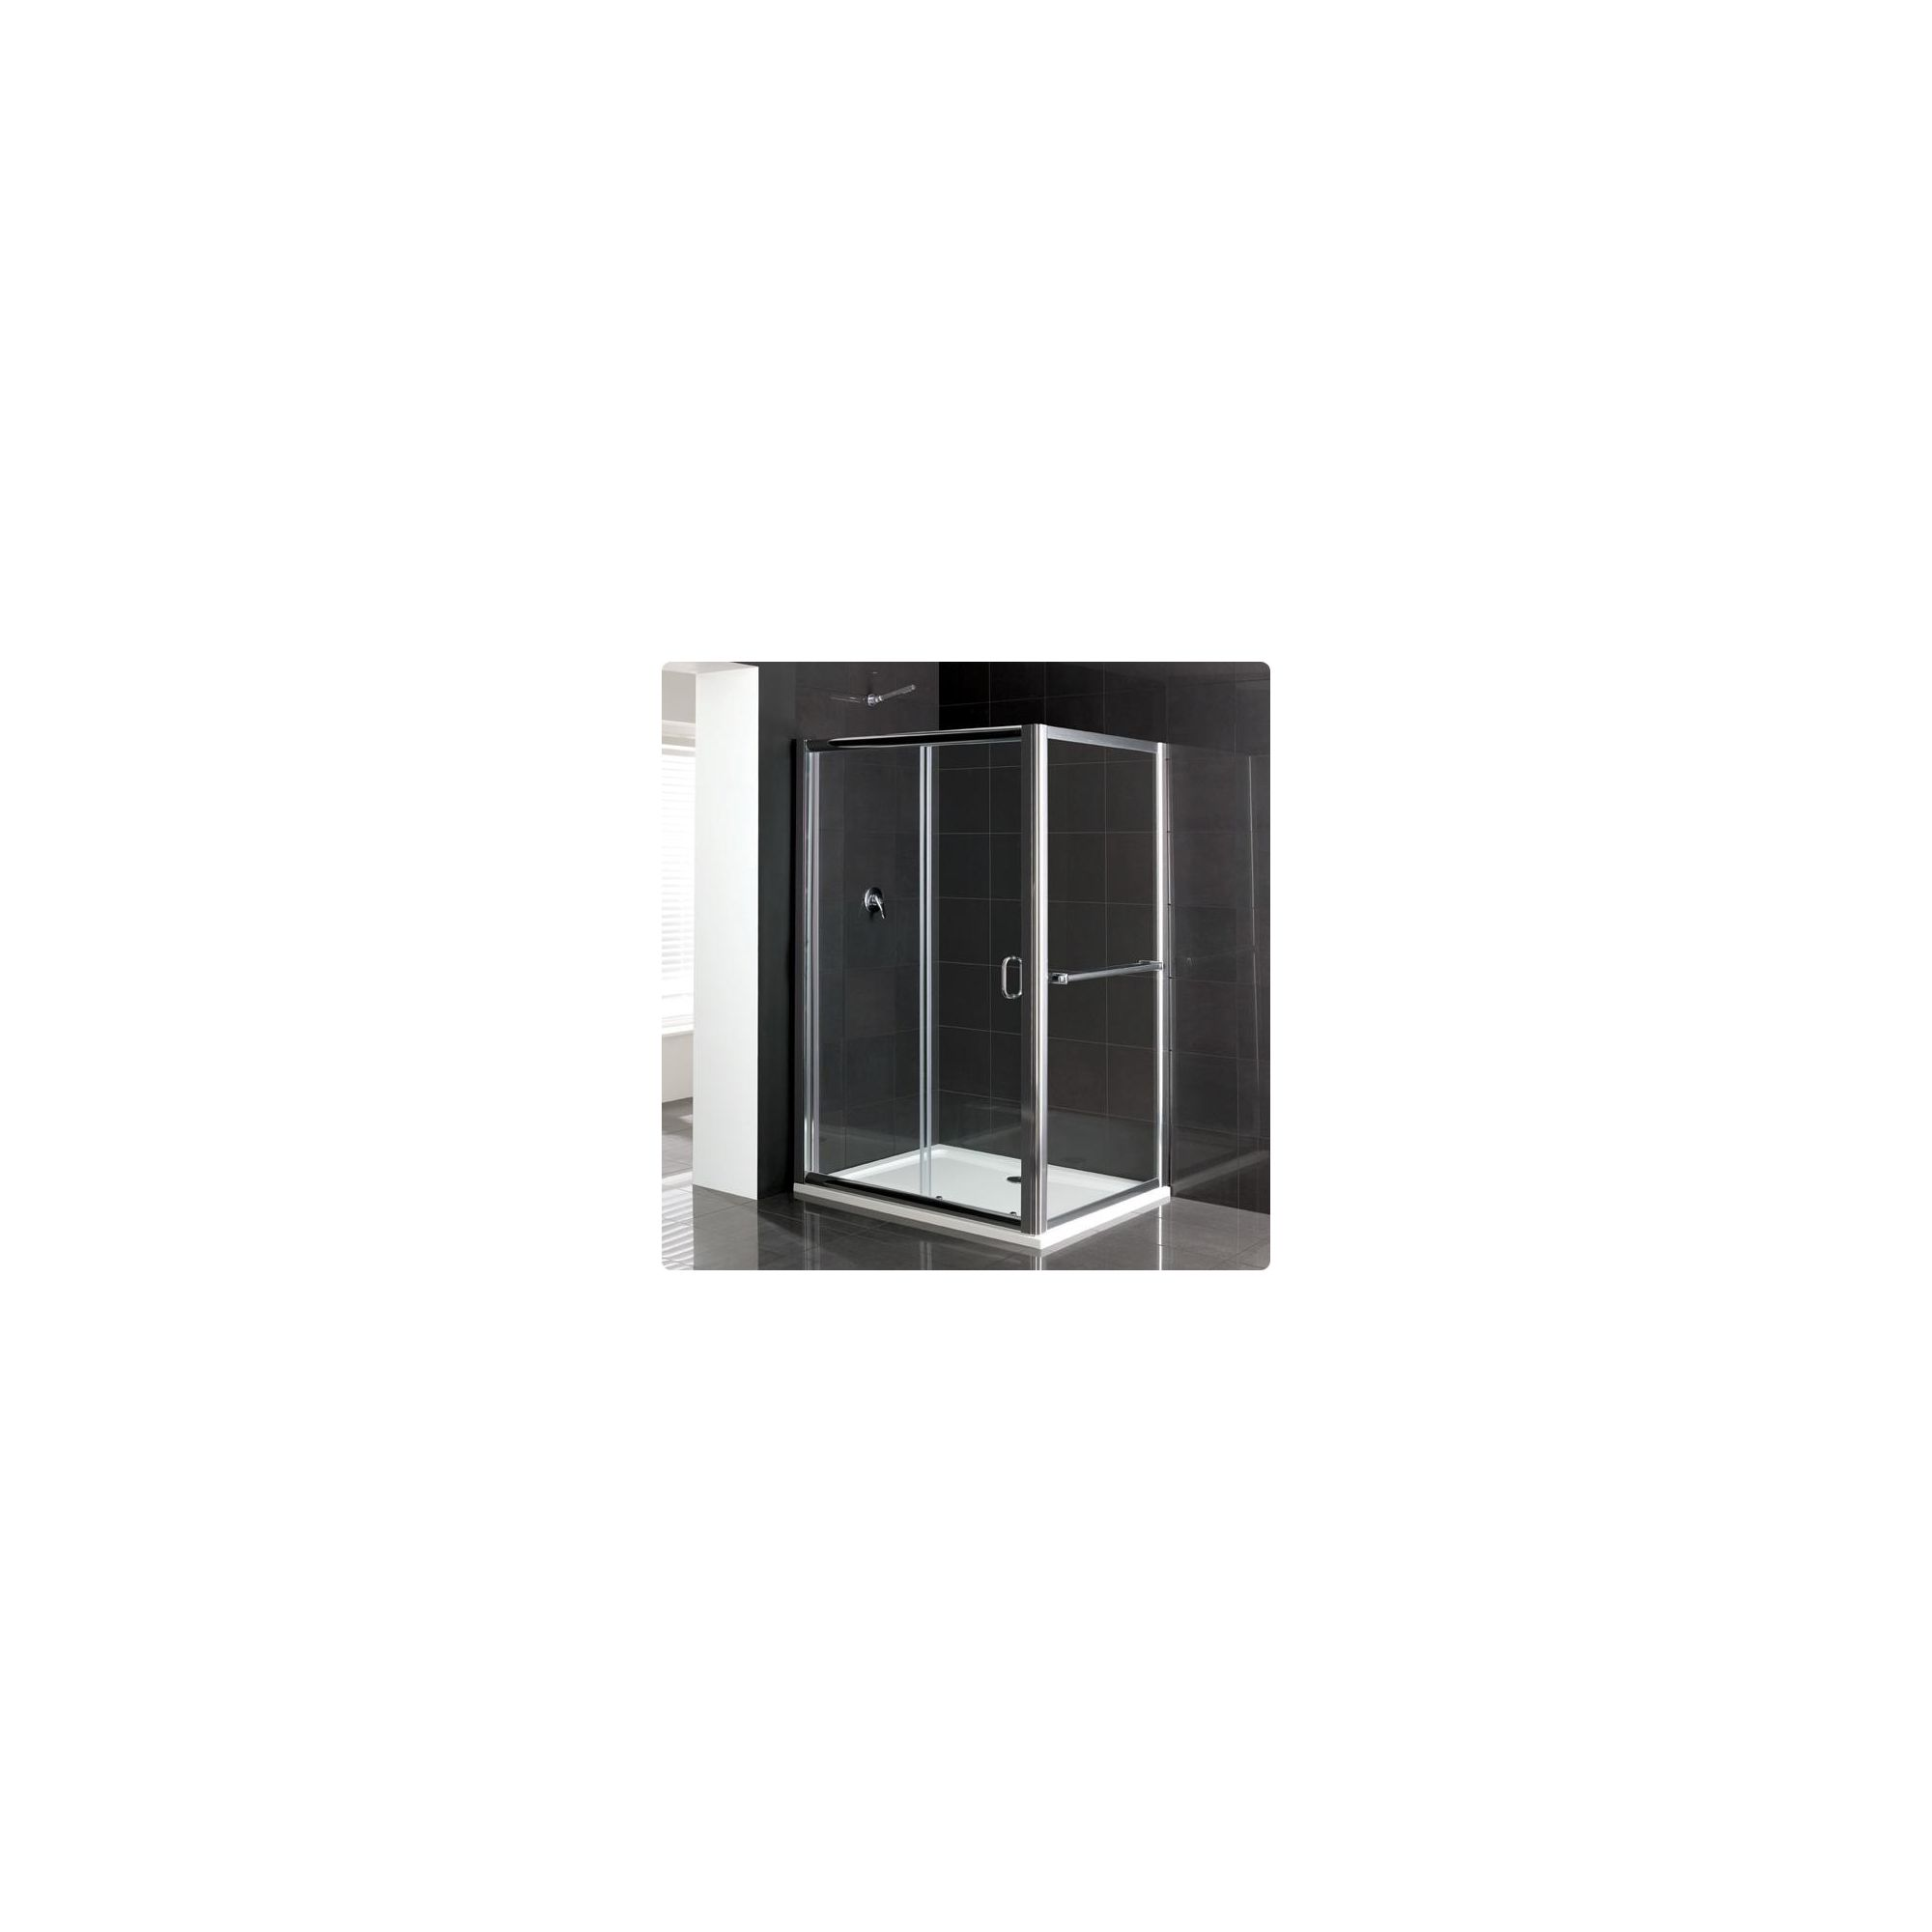 Duchy Elite Silver Sliding Door Shower Enclosure, 1200mm x 760mm, Standard Tray, 6mm Glass at Tesco Direct